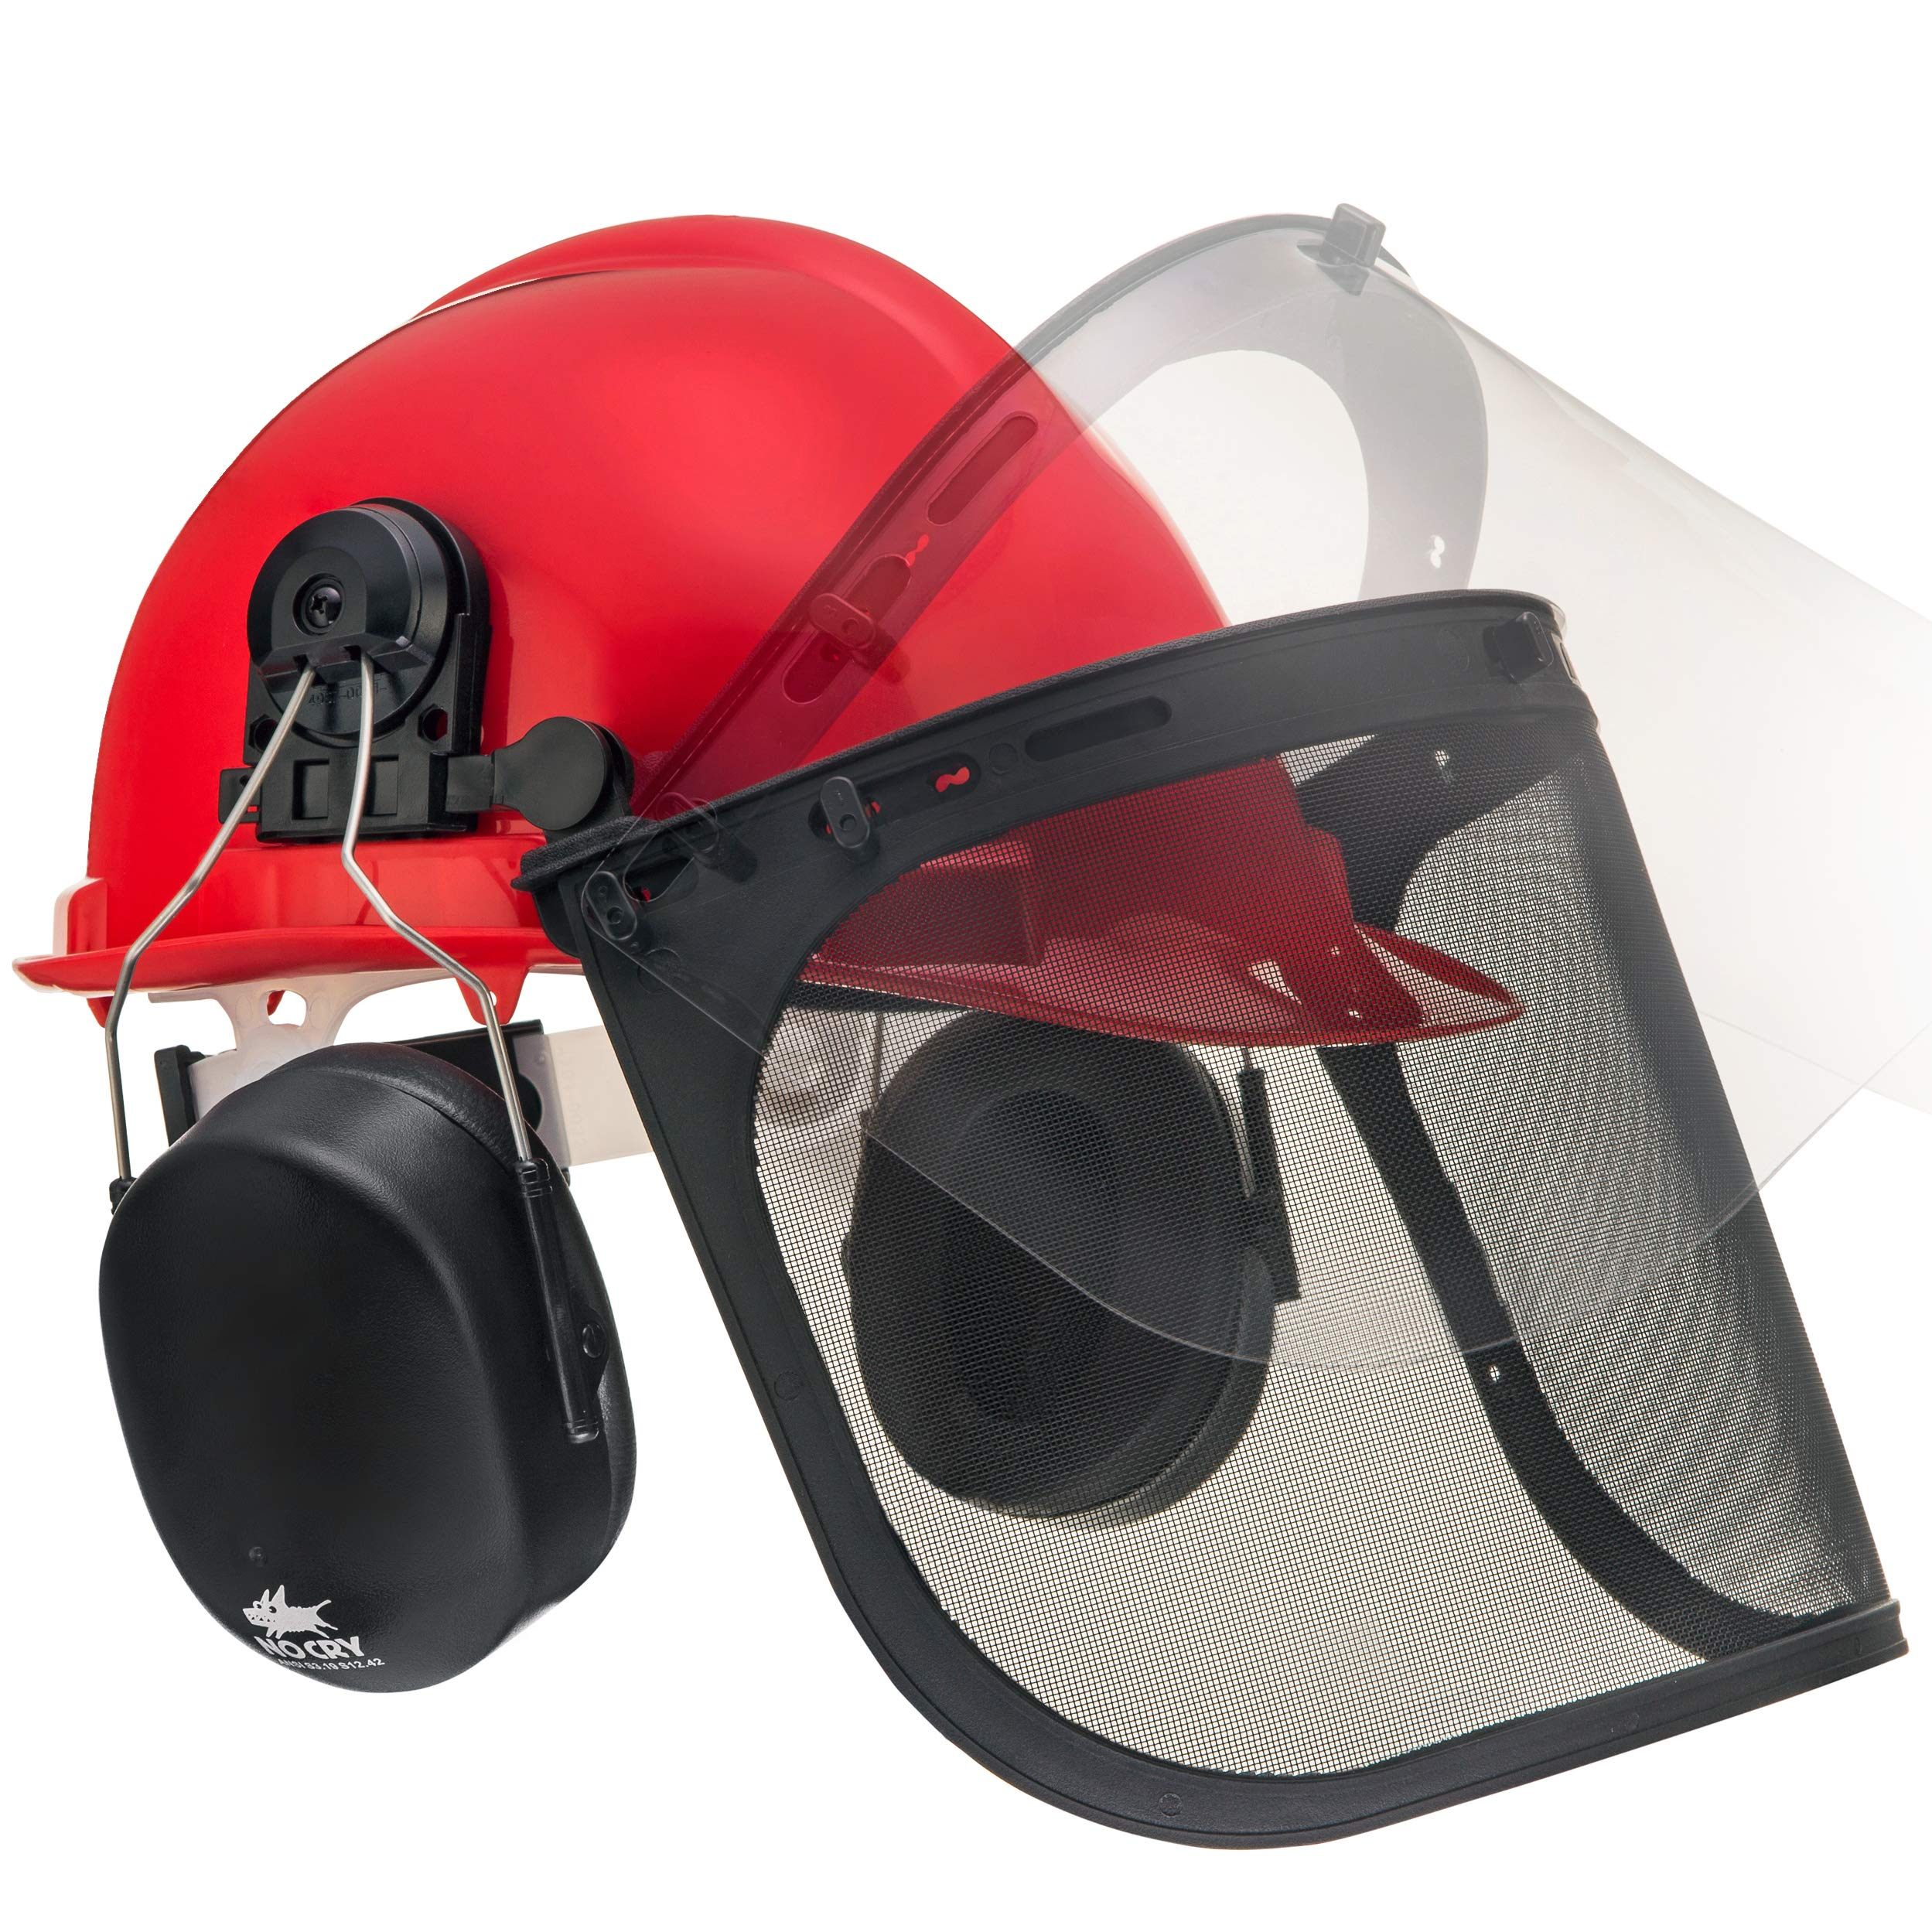 NoCry 6-in-1 Industrial Forestry Safety Helmet and Hearing Protection System with Two Protective Visors by NoCry